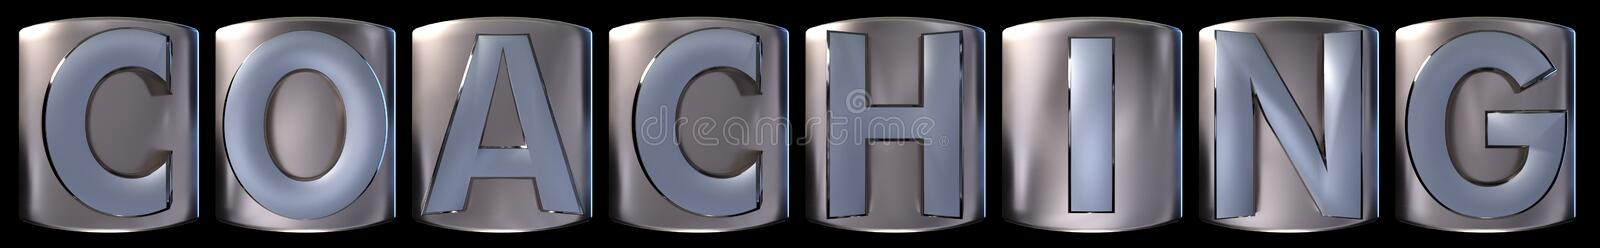 Metallic coaching word. Metallic blue silver coaching word realistic 3d rendered on black background vector illustration